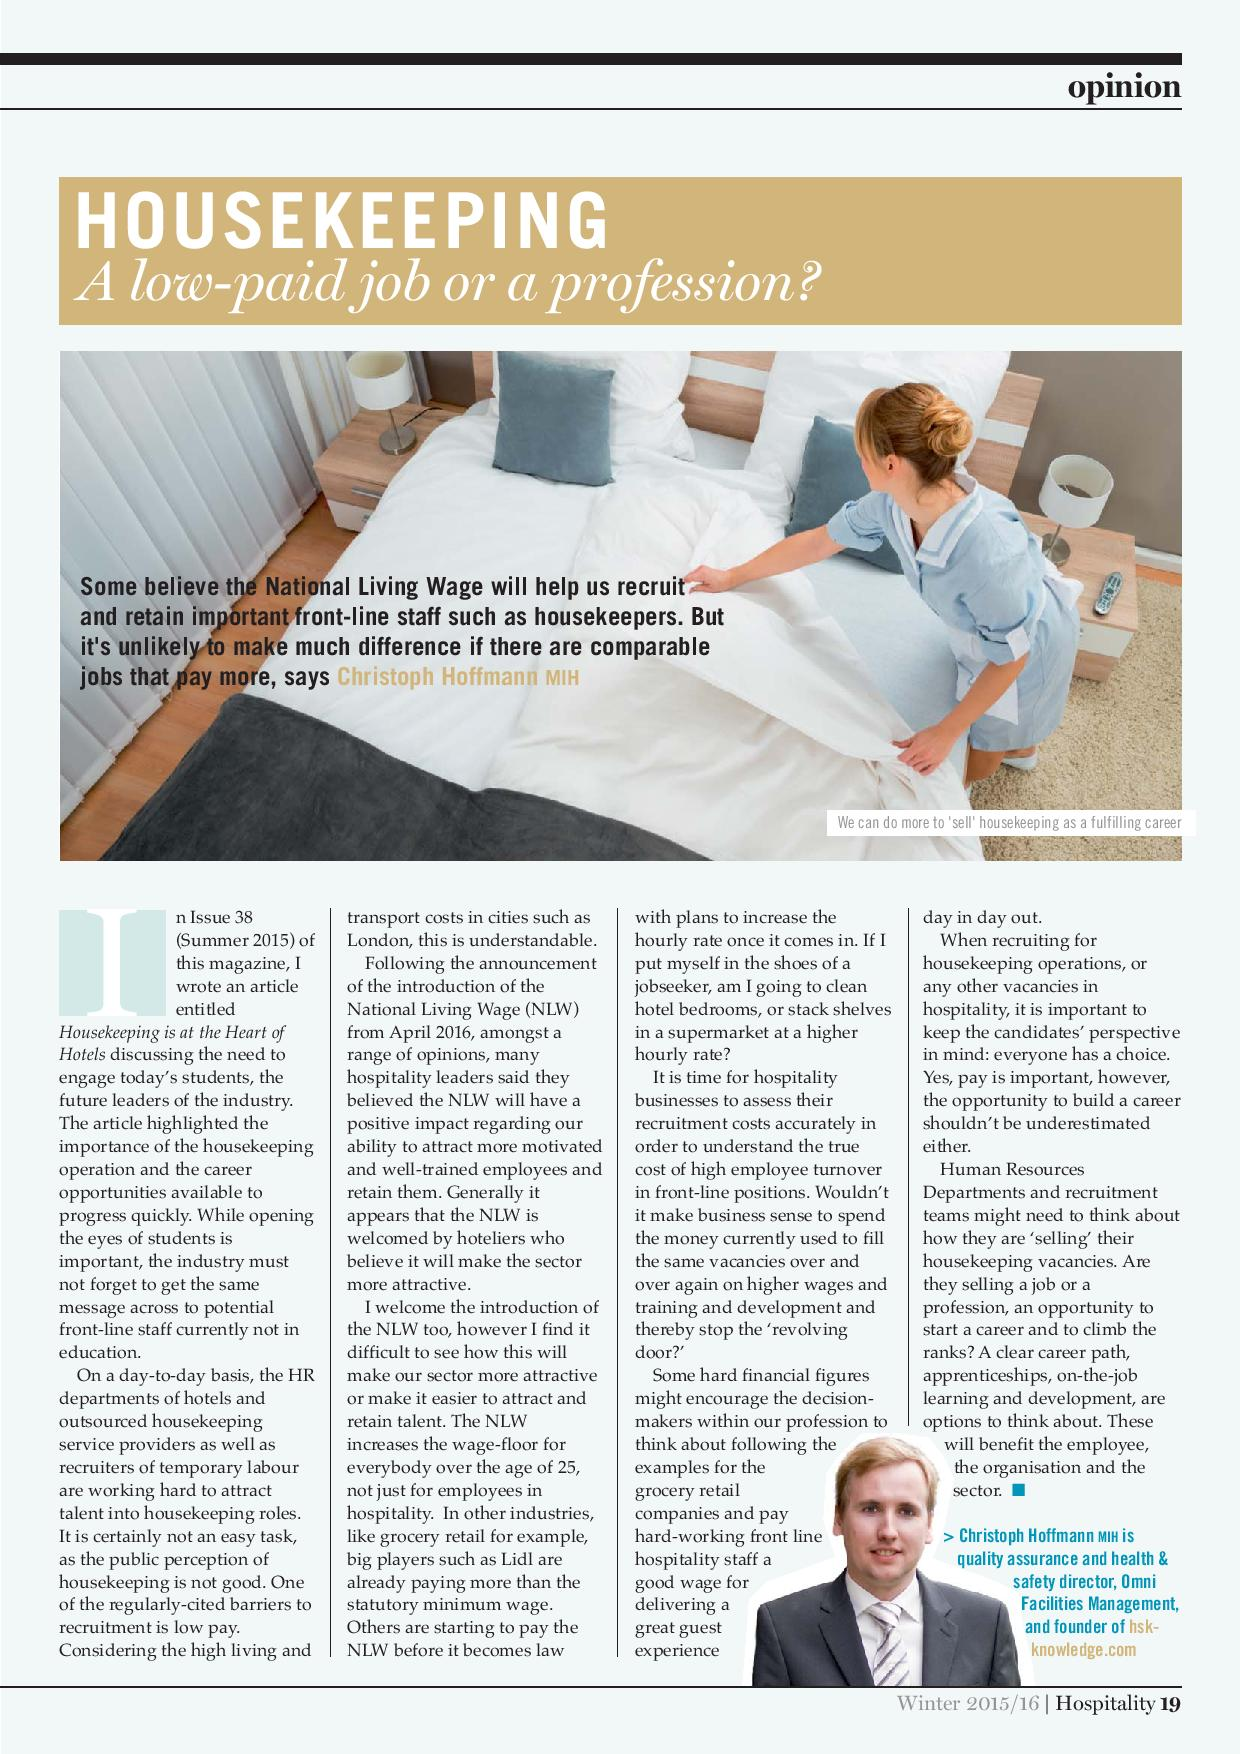 Housekeeping – A low-paid job or a profession?